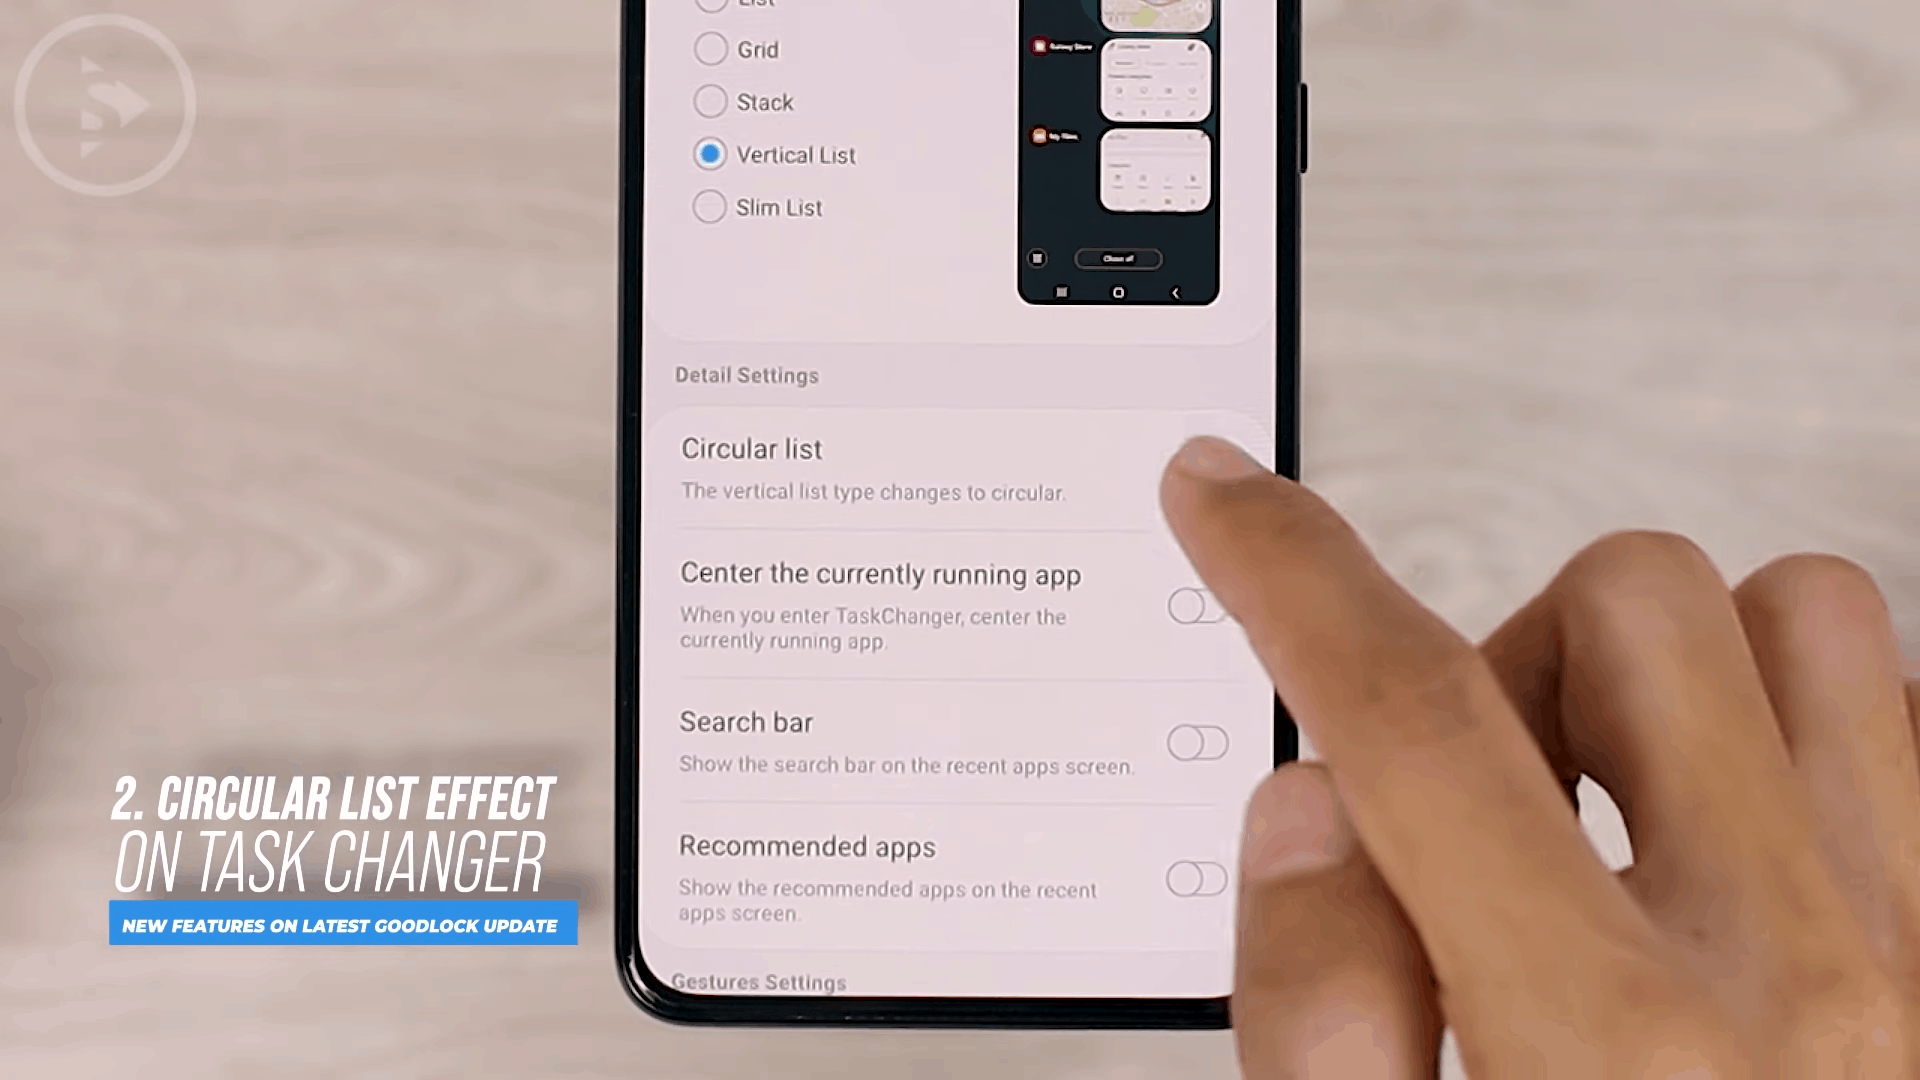 Circular List Effect on Task Changer - 8 COOL Features in the LATEST Good Lock Update April 2021